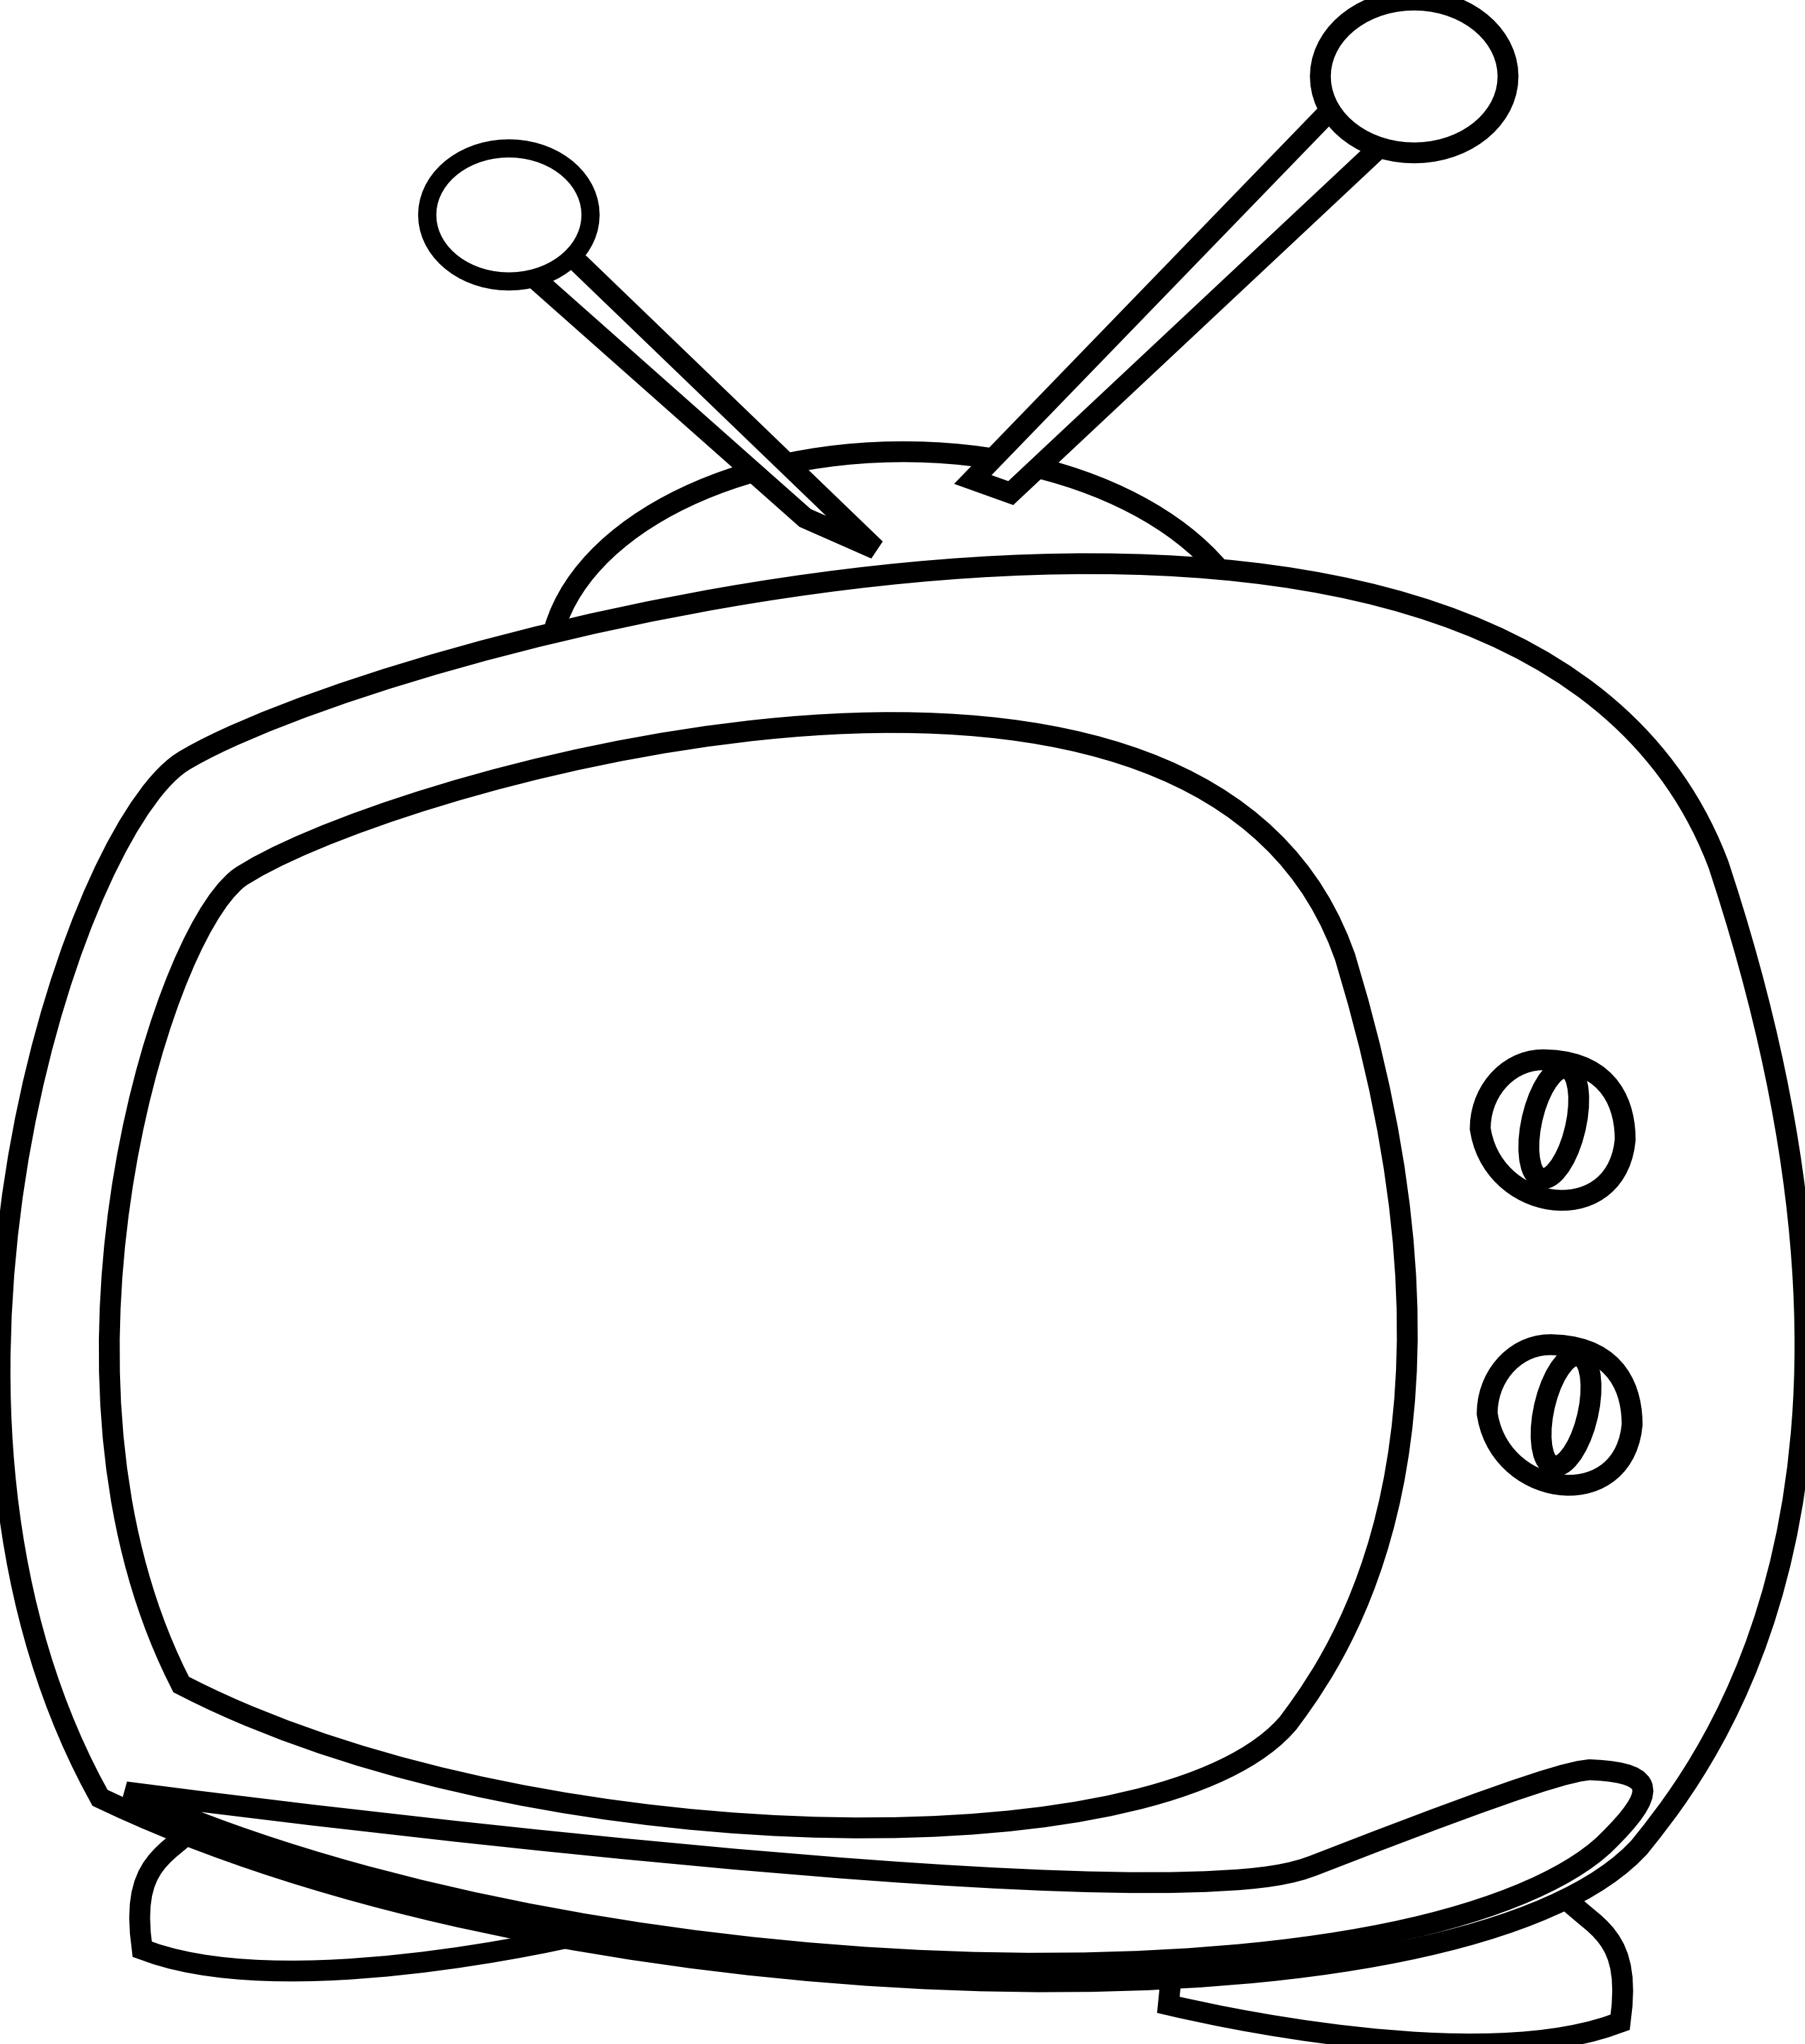 tv clipart. tv%20clipart%20black%20and%20white tv clipart